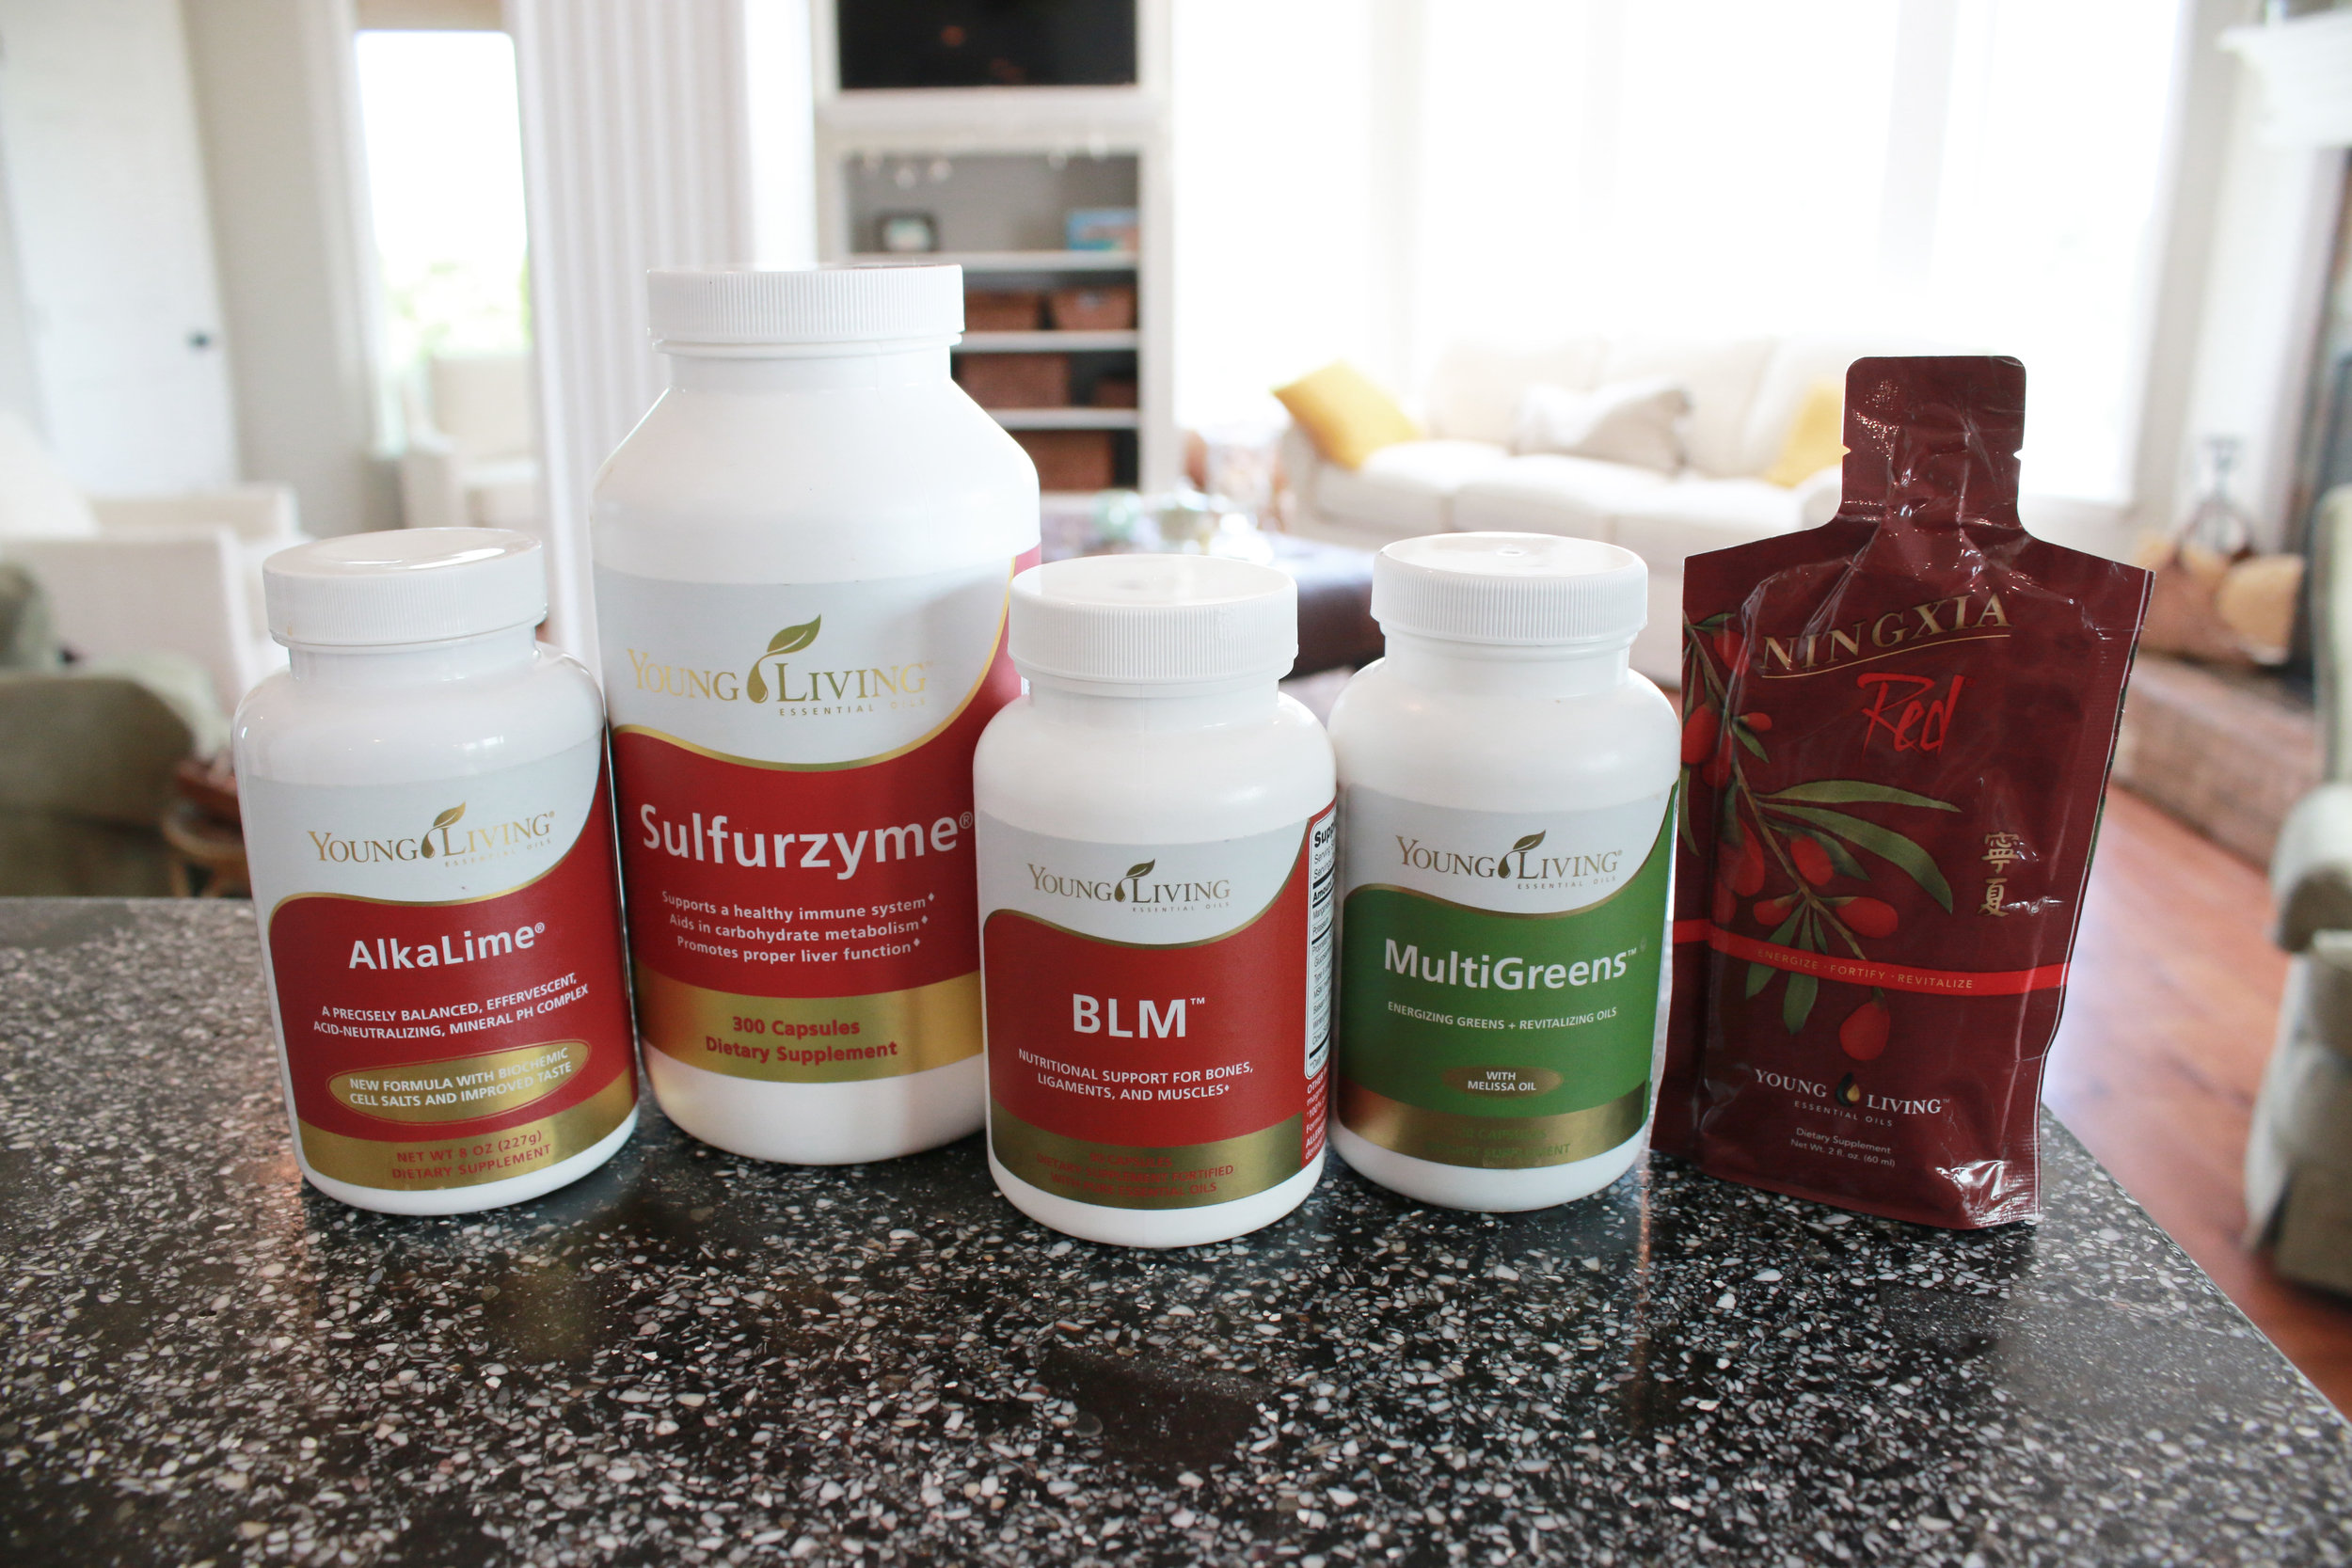 Young-Living-Essential-Oils-Oil-Supplements-BLM-Agilease-MultiGreens-Sulfurzyme-Akalime-Ningxia-Red-The-Oily-Home-Companion.jpg